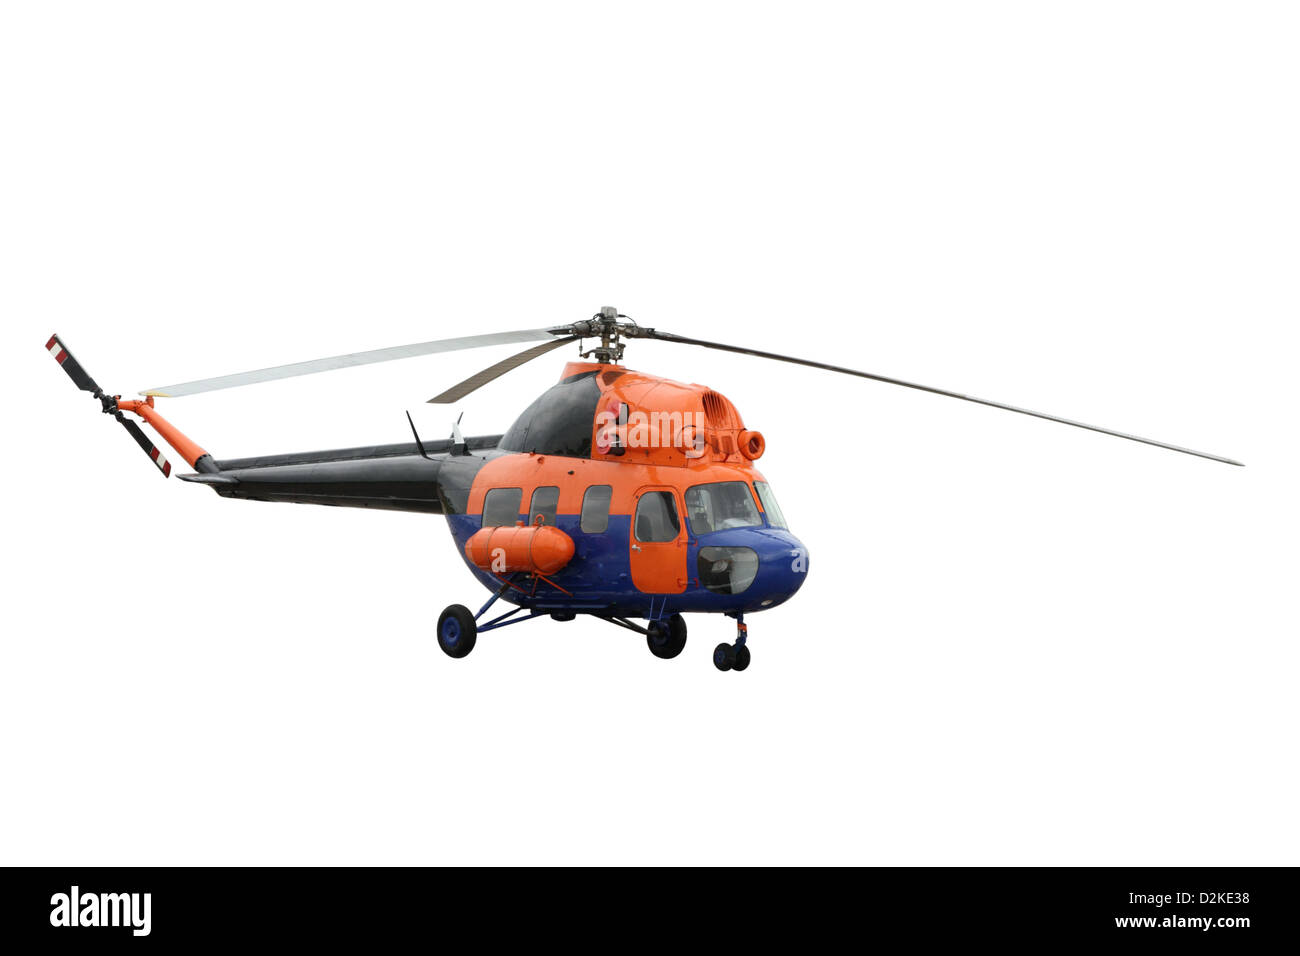 The orange helicopter separately on a white background - Stock Image